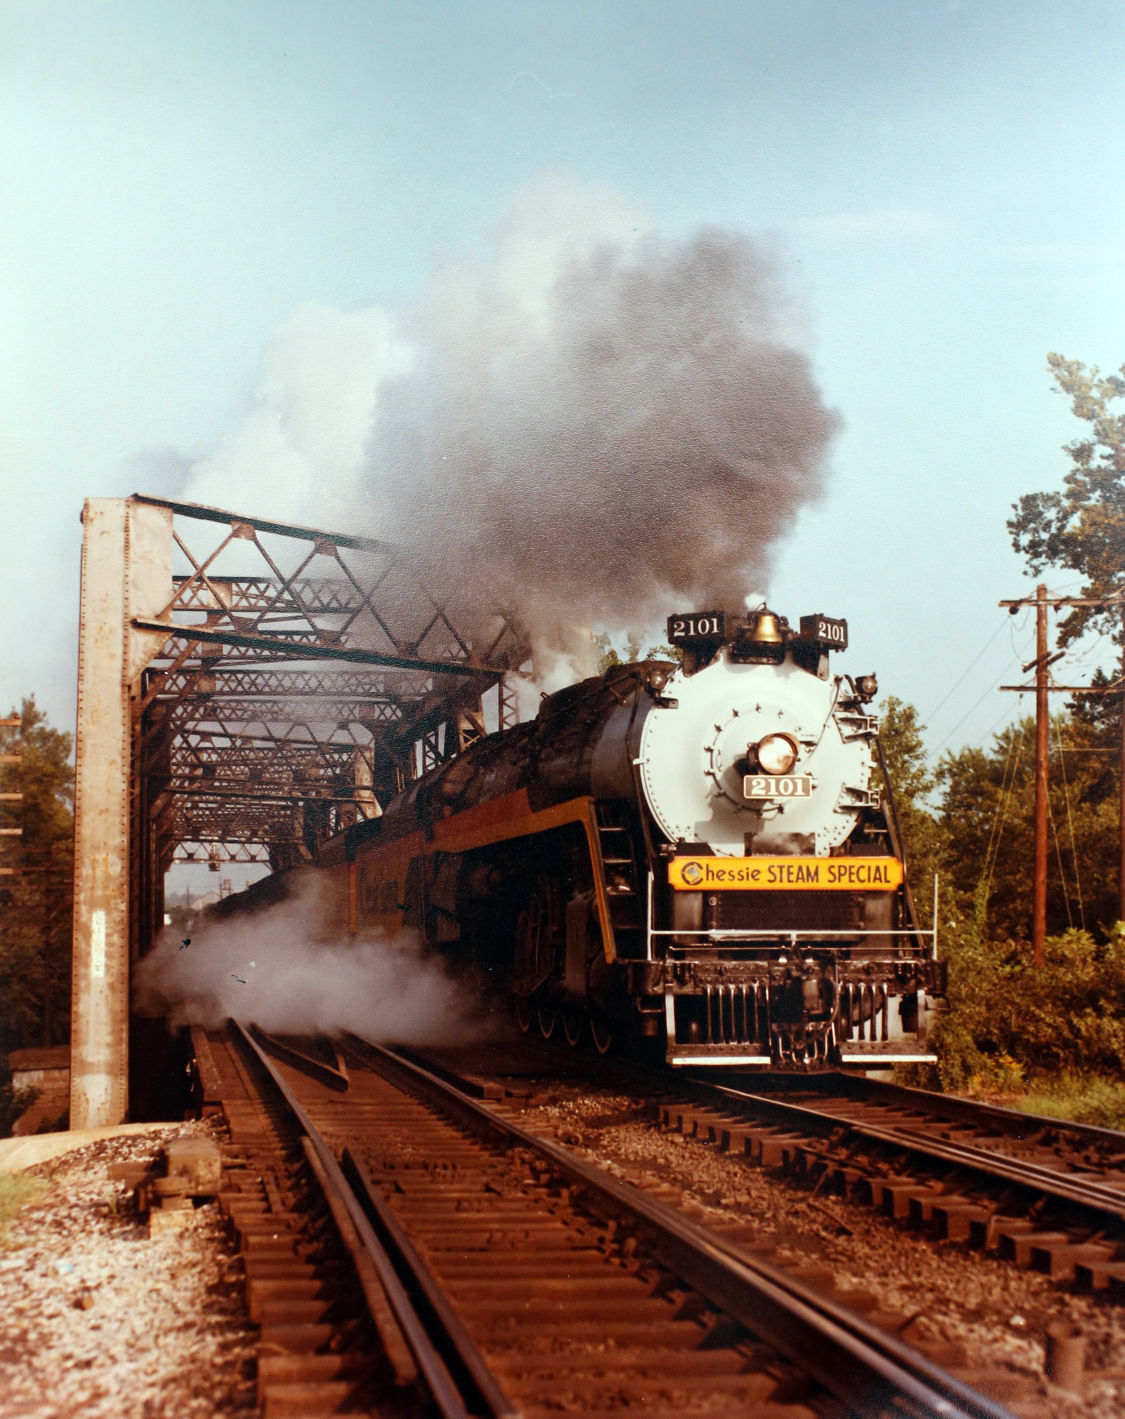 Latest changes at CSX part of evolving rail history | News